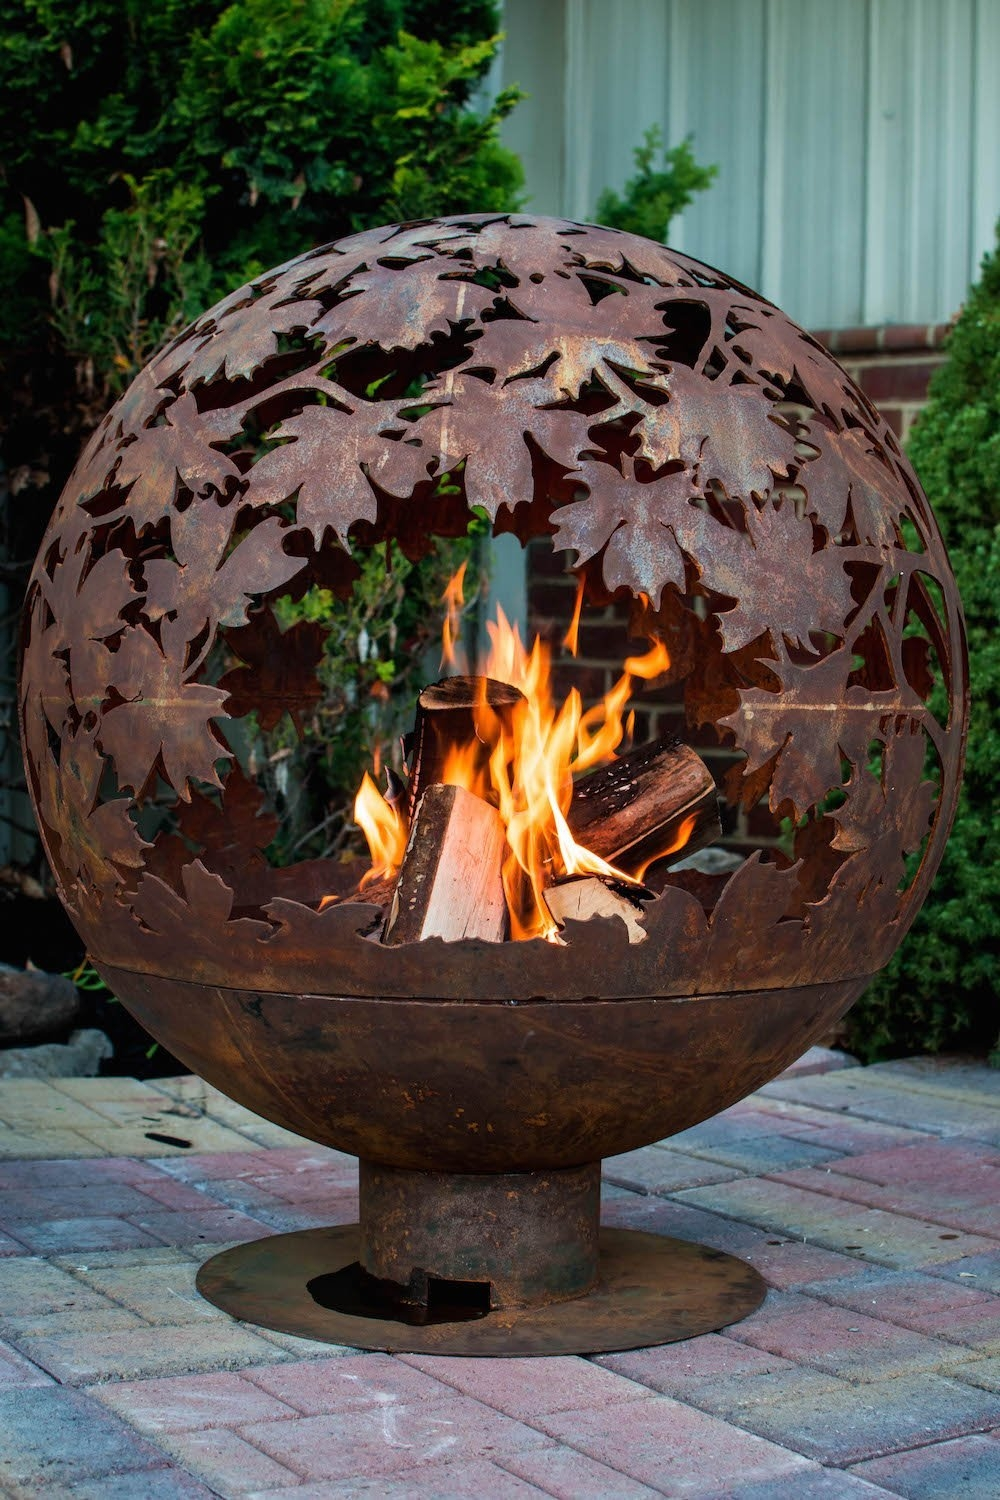 The Best Fire Pits and Fire Globes | HydroPro Sales Inc